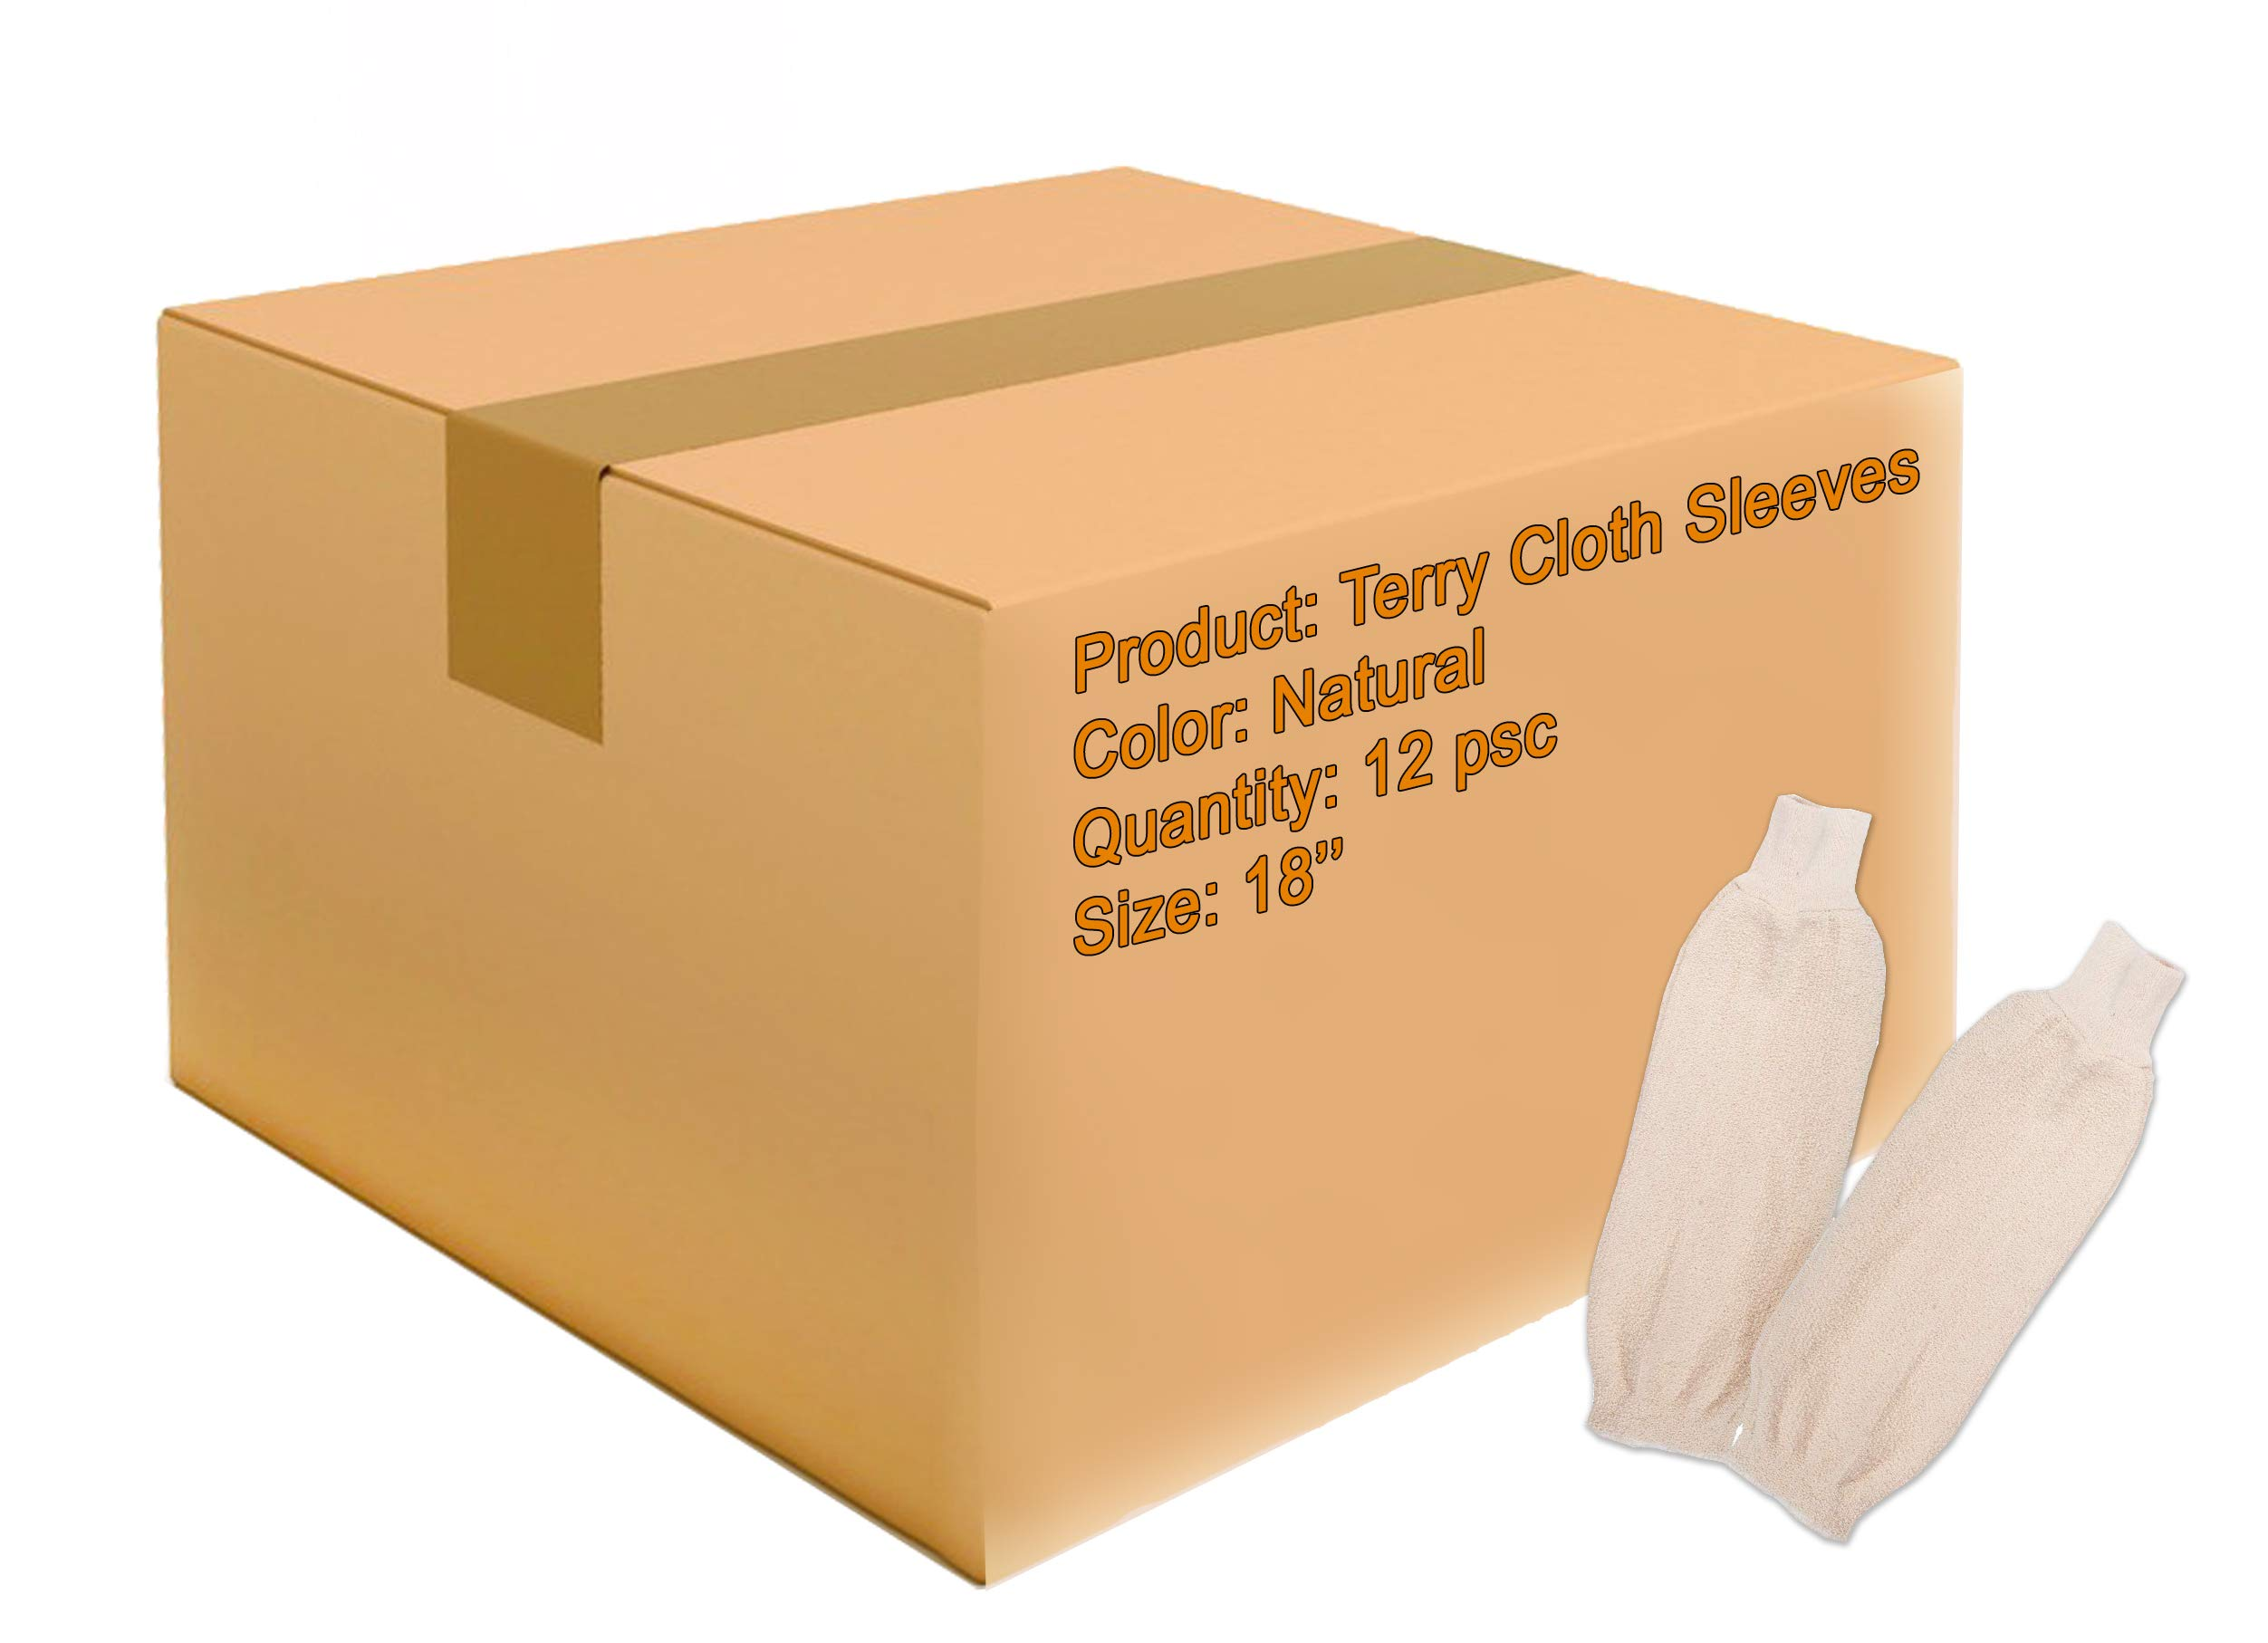 ABC 12 Pairs of Terry Cloth Sleeves 18''. Industrial Oven Sleeves for Heat Protection. Heat Resistant Protective Sleeves for Baking, Cooking Needs. Thermal Arm Protection. Natural Color. by ABC Pack & Supply